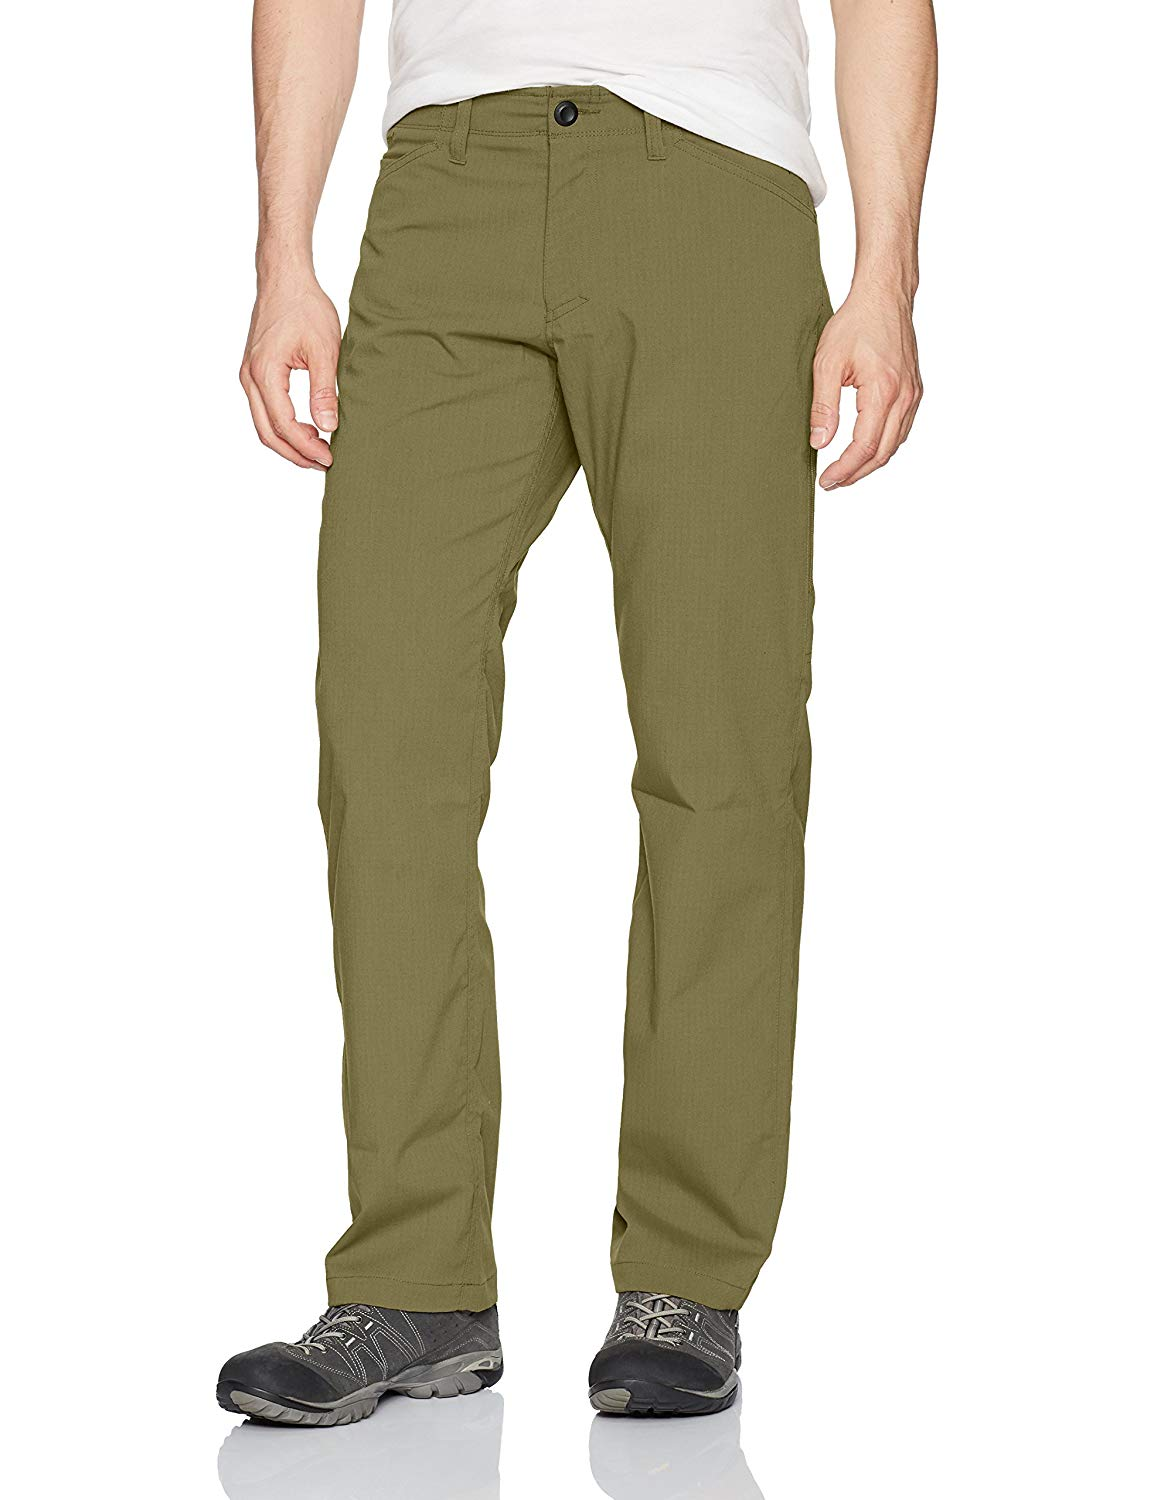 best hiking pants for men - Under Armour